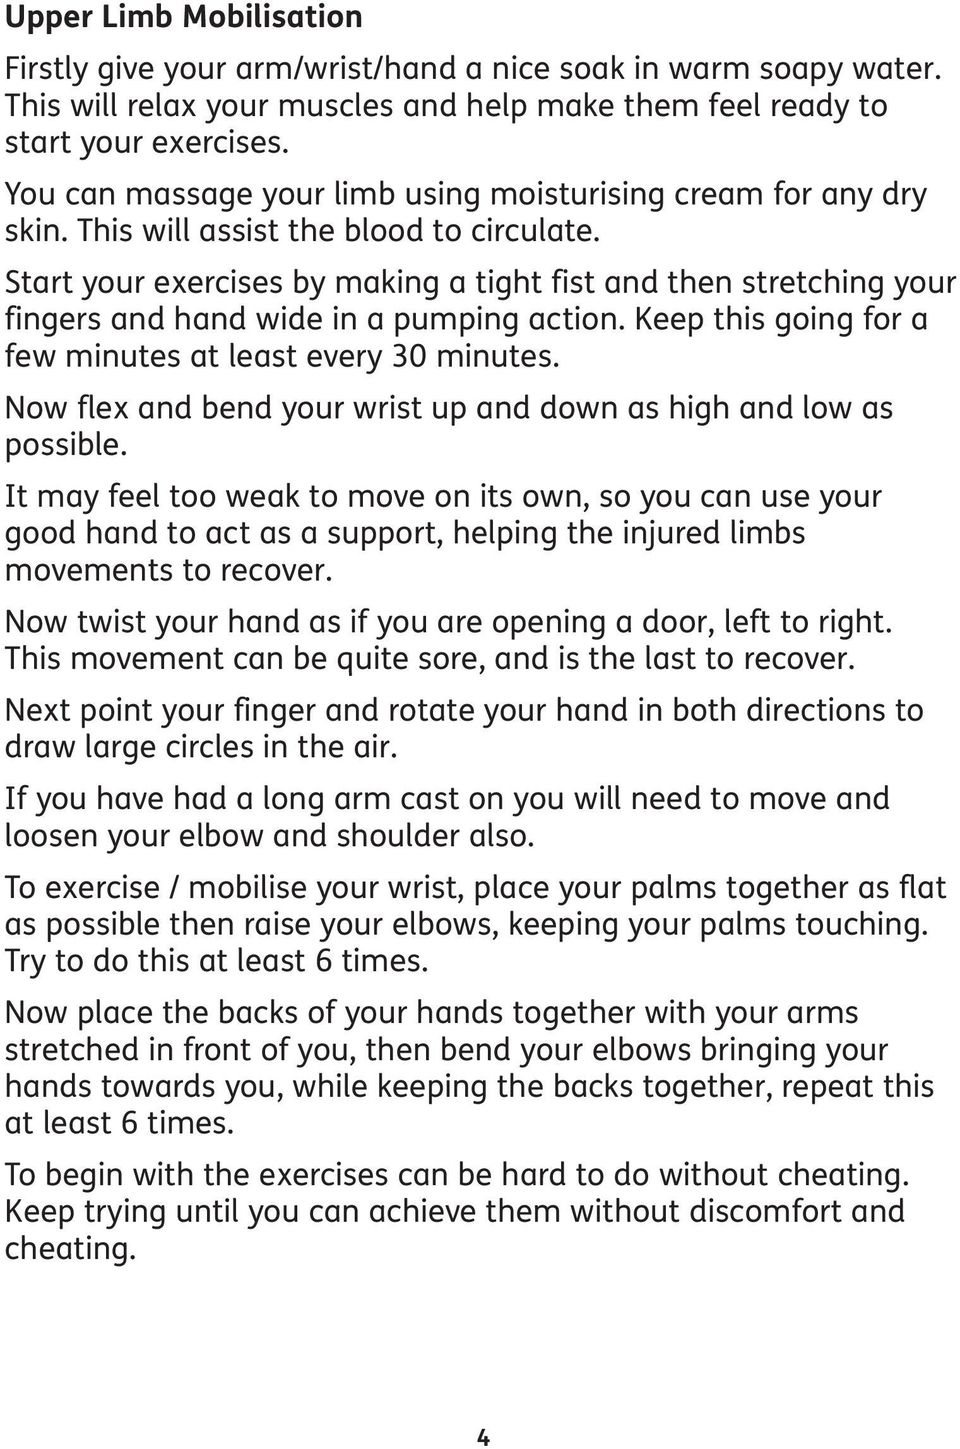 Start your exercises by making a tight fist and then stretching your fingers and hand wide in a pumping action. Keep this going for a few minutes at least every 30 minutes.